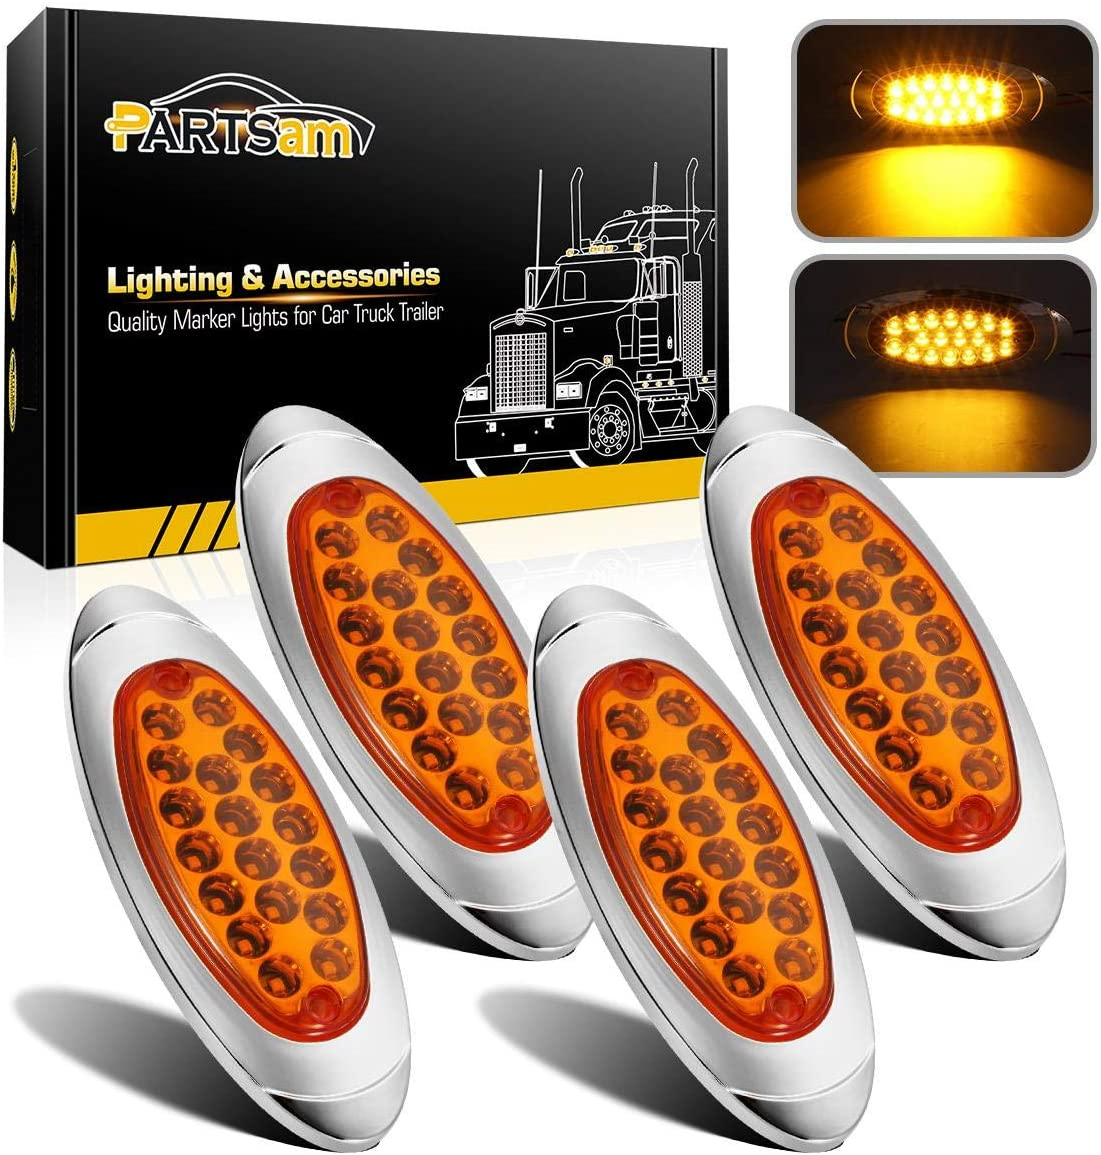 Oval Reflective Amber LED Marker Light Replacement for Peterbilt//Kenworth Truck Trailers Partsam 10Pcs Amber Flat 6-1//5 Peterbilt-Style Led Marker Lights 12LED w Reflex Lens Surface Mount